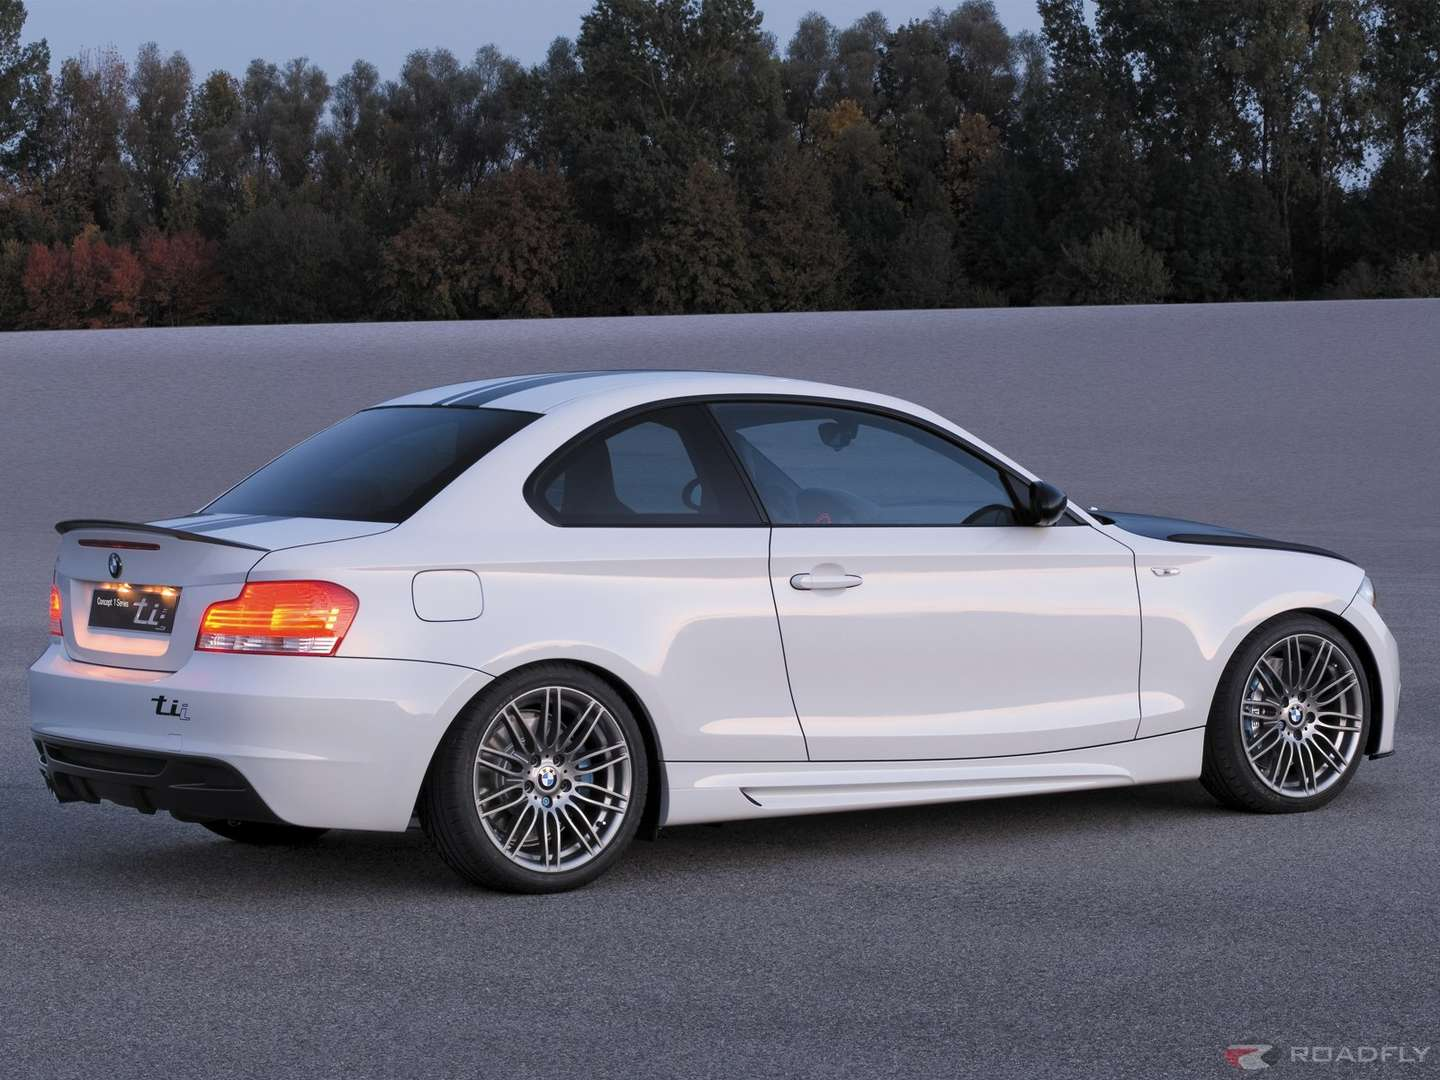 BMW 1 Series Coupe #9087303